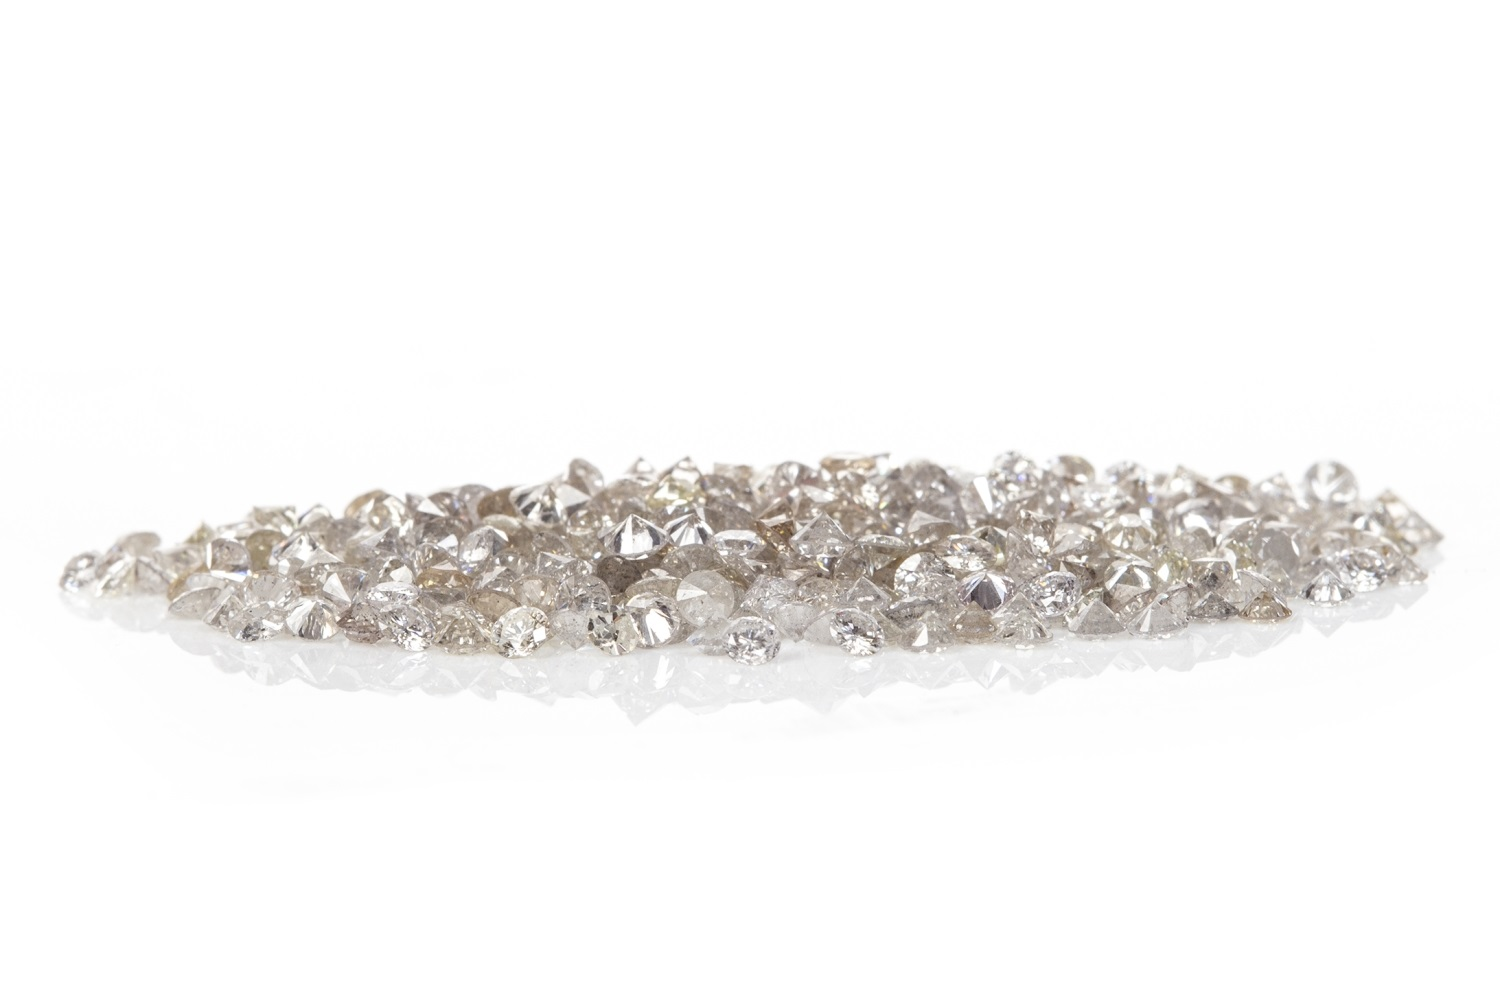 Lot 158 - A COLLECTION OF UNMOUNTED DIAMONDS